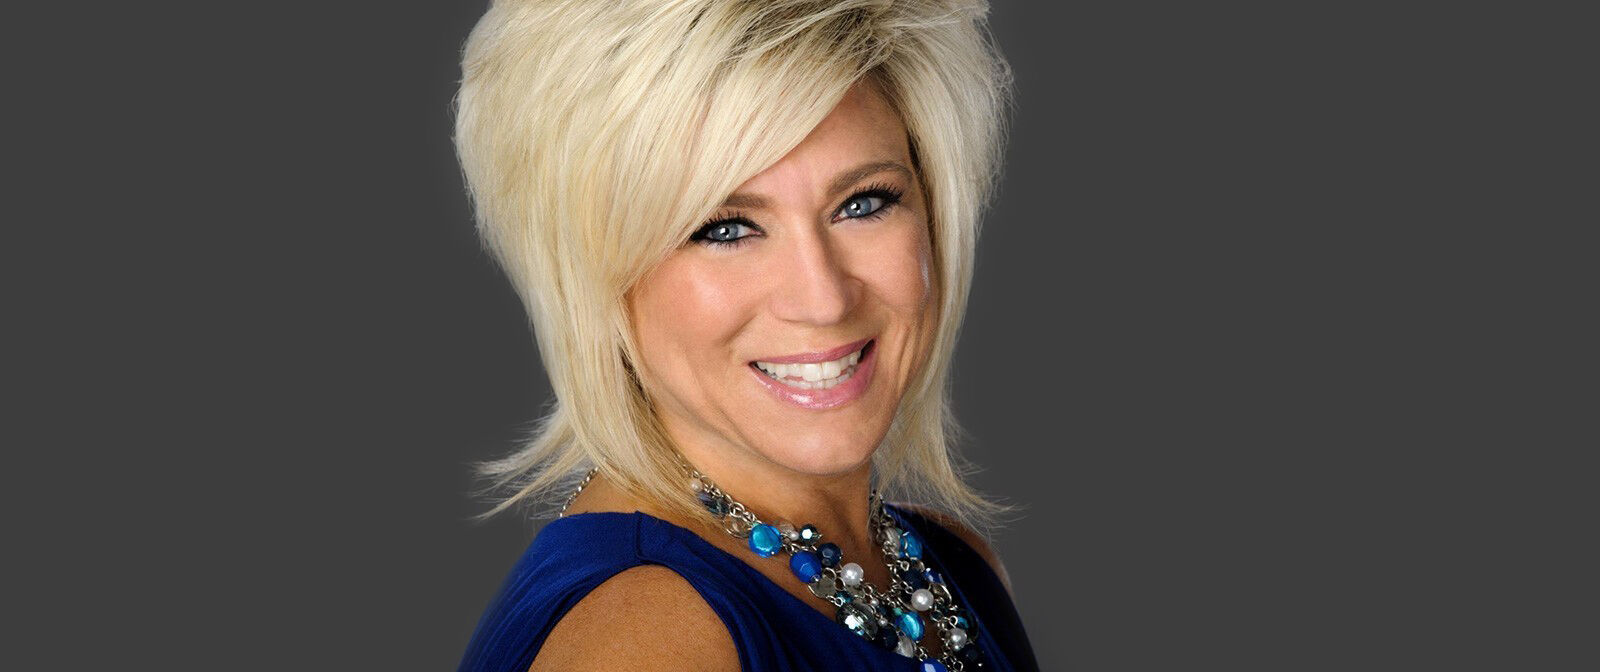 PARKING PASSES ONLY Theresa Caputo